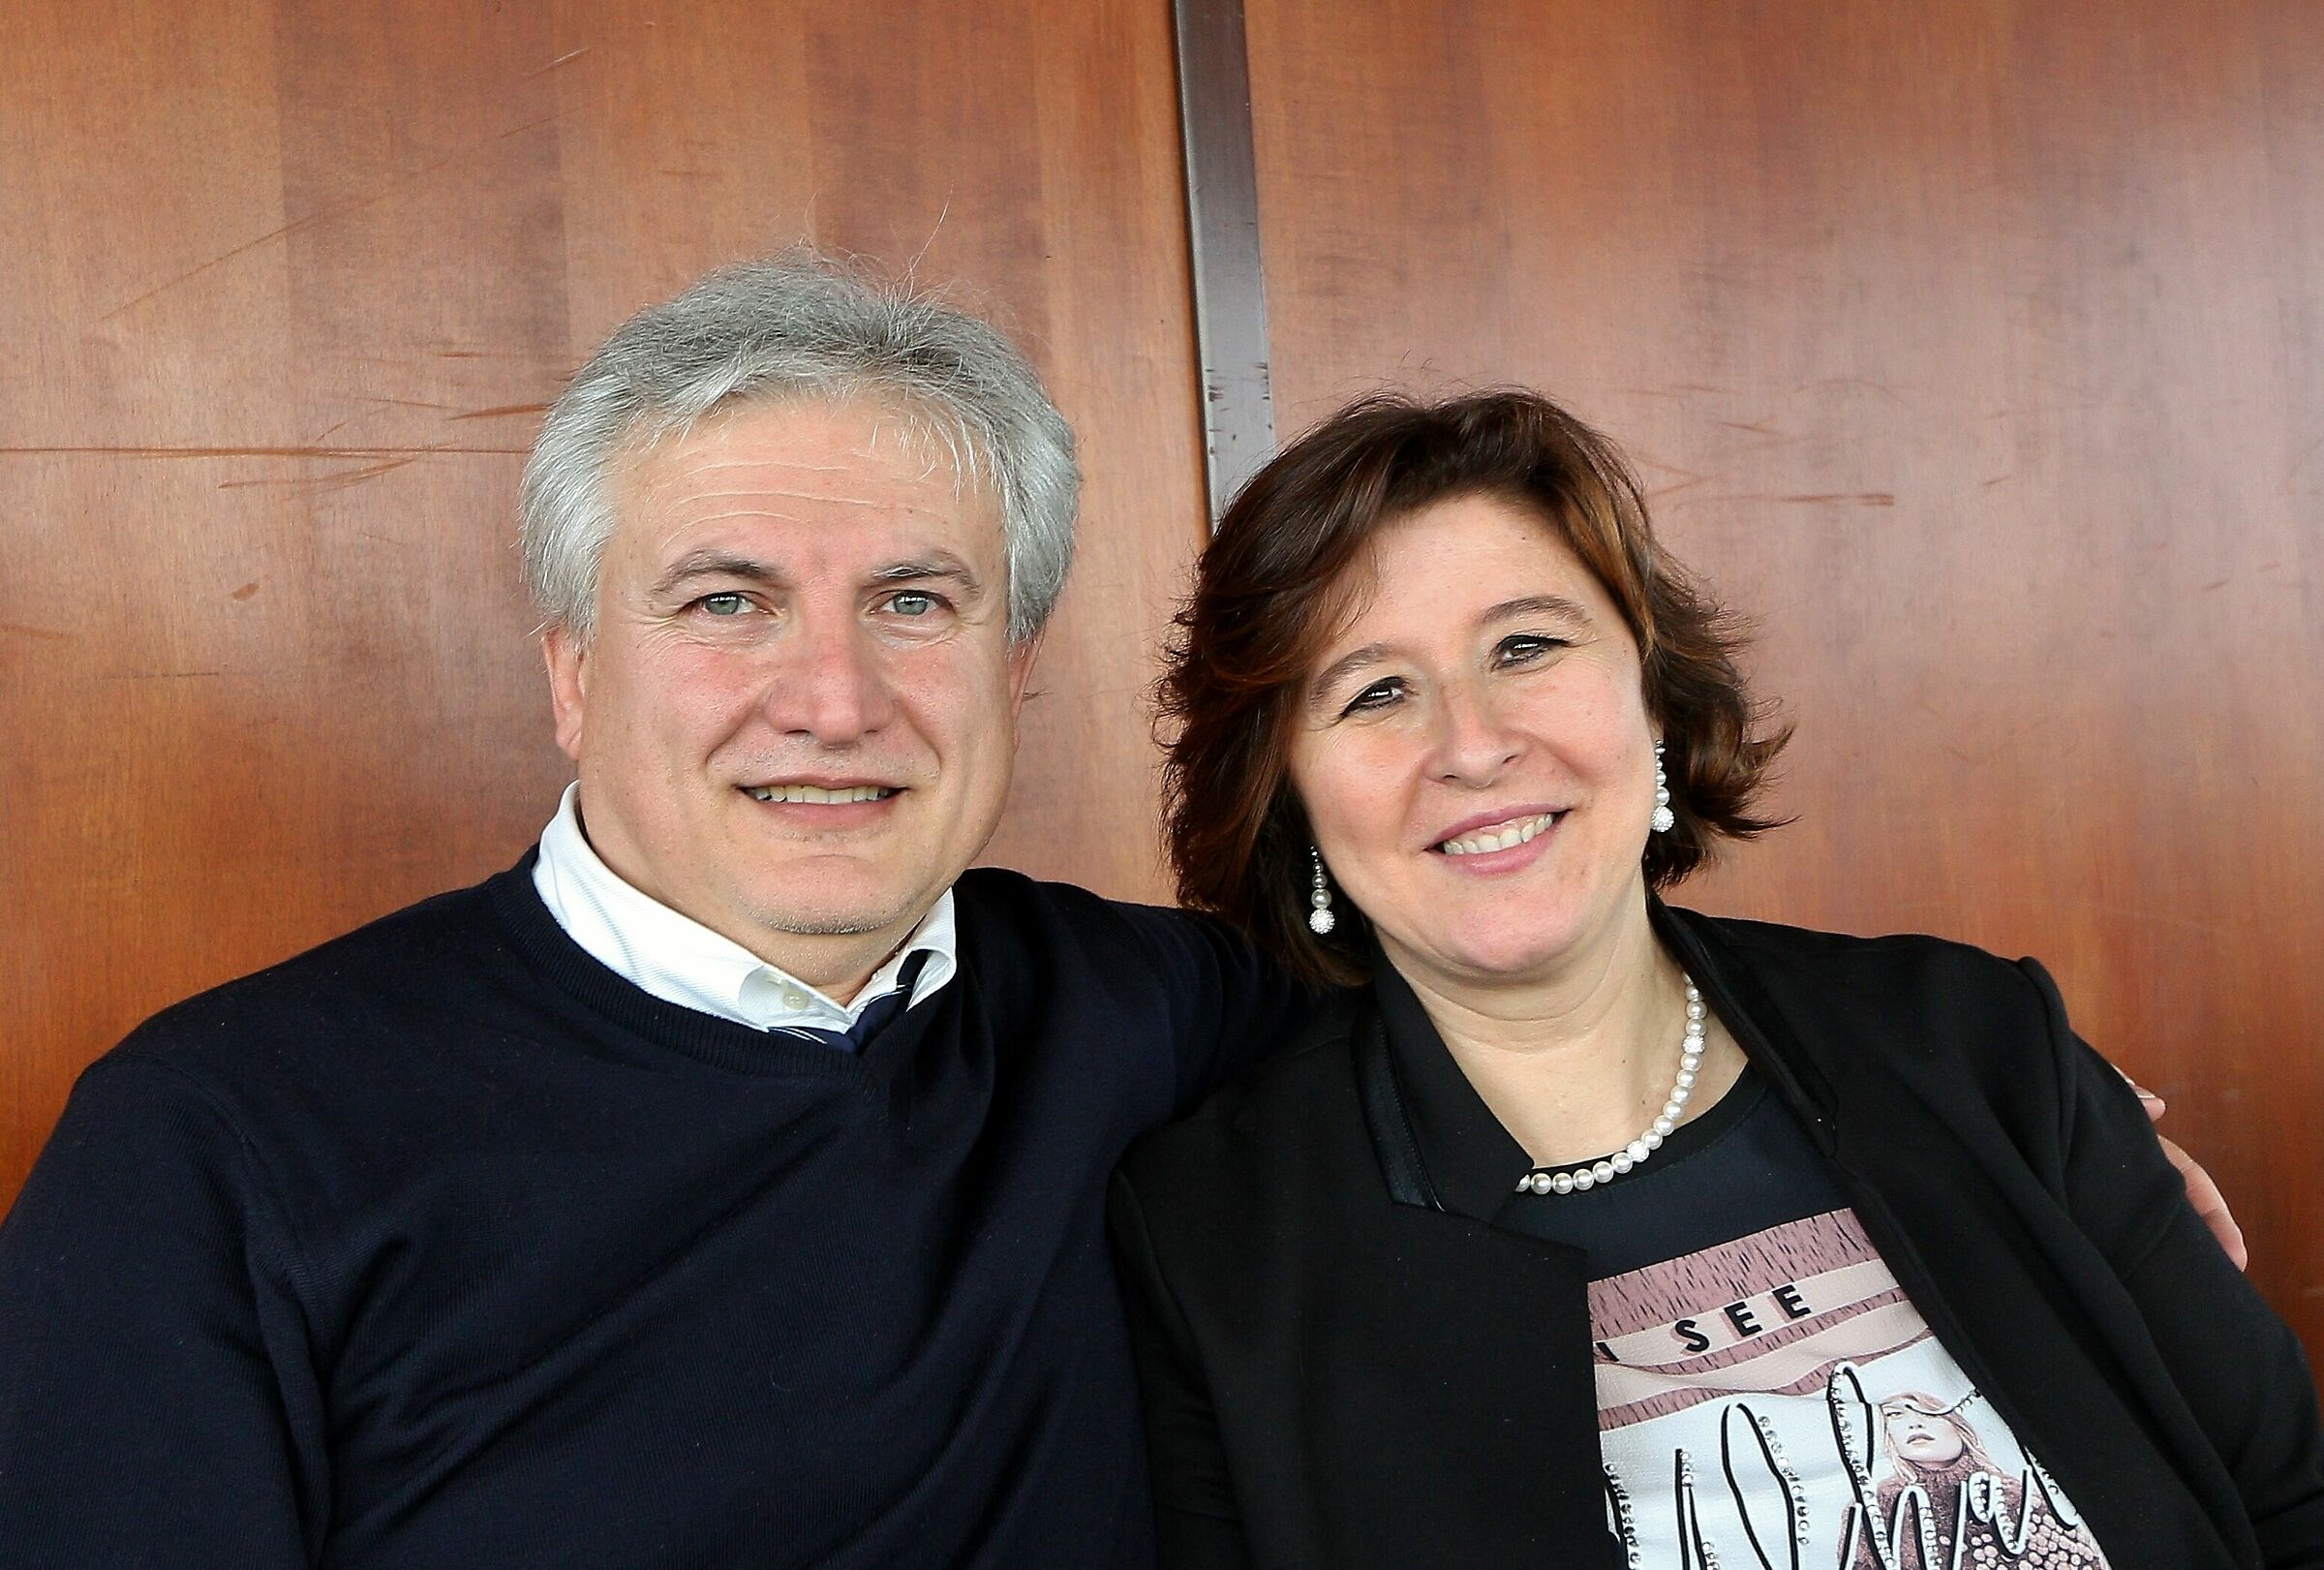 Today it is 30 (years of marriage)...